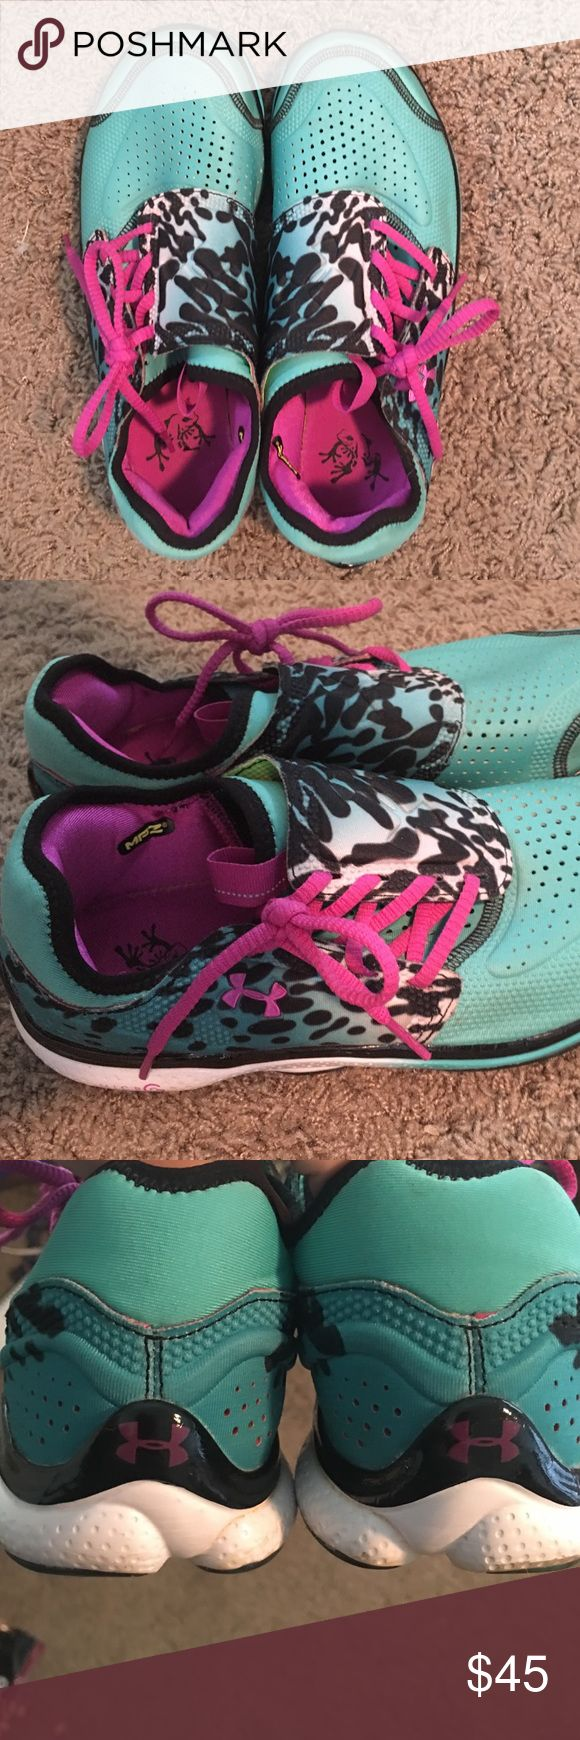 Under Armour tennis shoes Under Armour tennis shoes. Great for running. Very light weight. Great condition. Under Armour Shoes Athletic Shoes